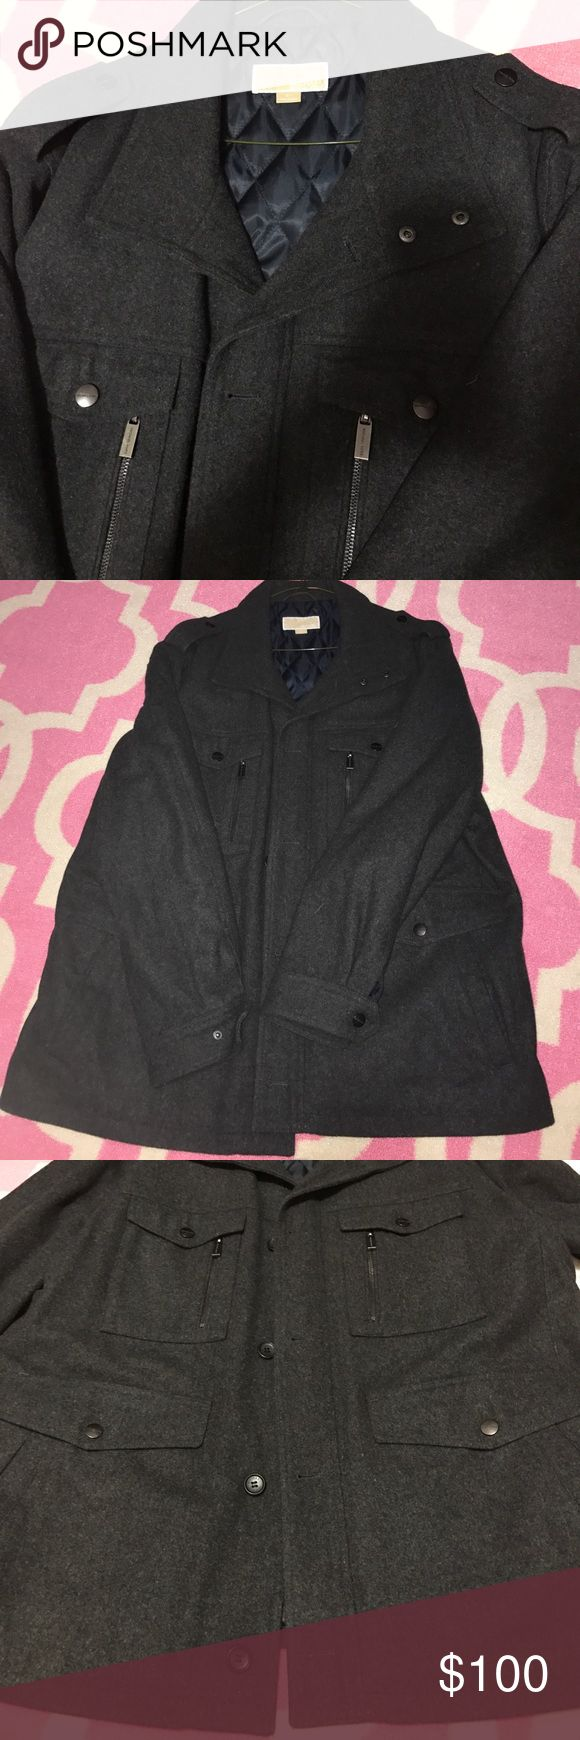 Men's Michael Kors Coat Size 2x Gray michael kors coat size 2x. Worn twice in excellent condition. My husband did the gastric bypass surgery so never got to wear any of his clothes more than a few times. Its been dry cleaned and ready to go! Feel free to ask any questions or make an offer. Michael Kors Jackets & Coats